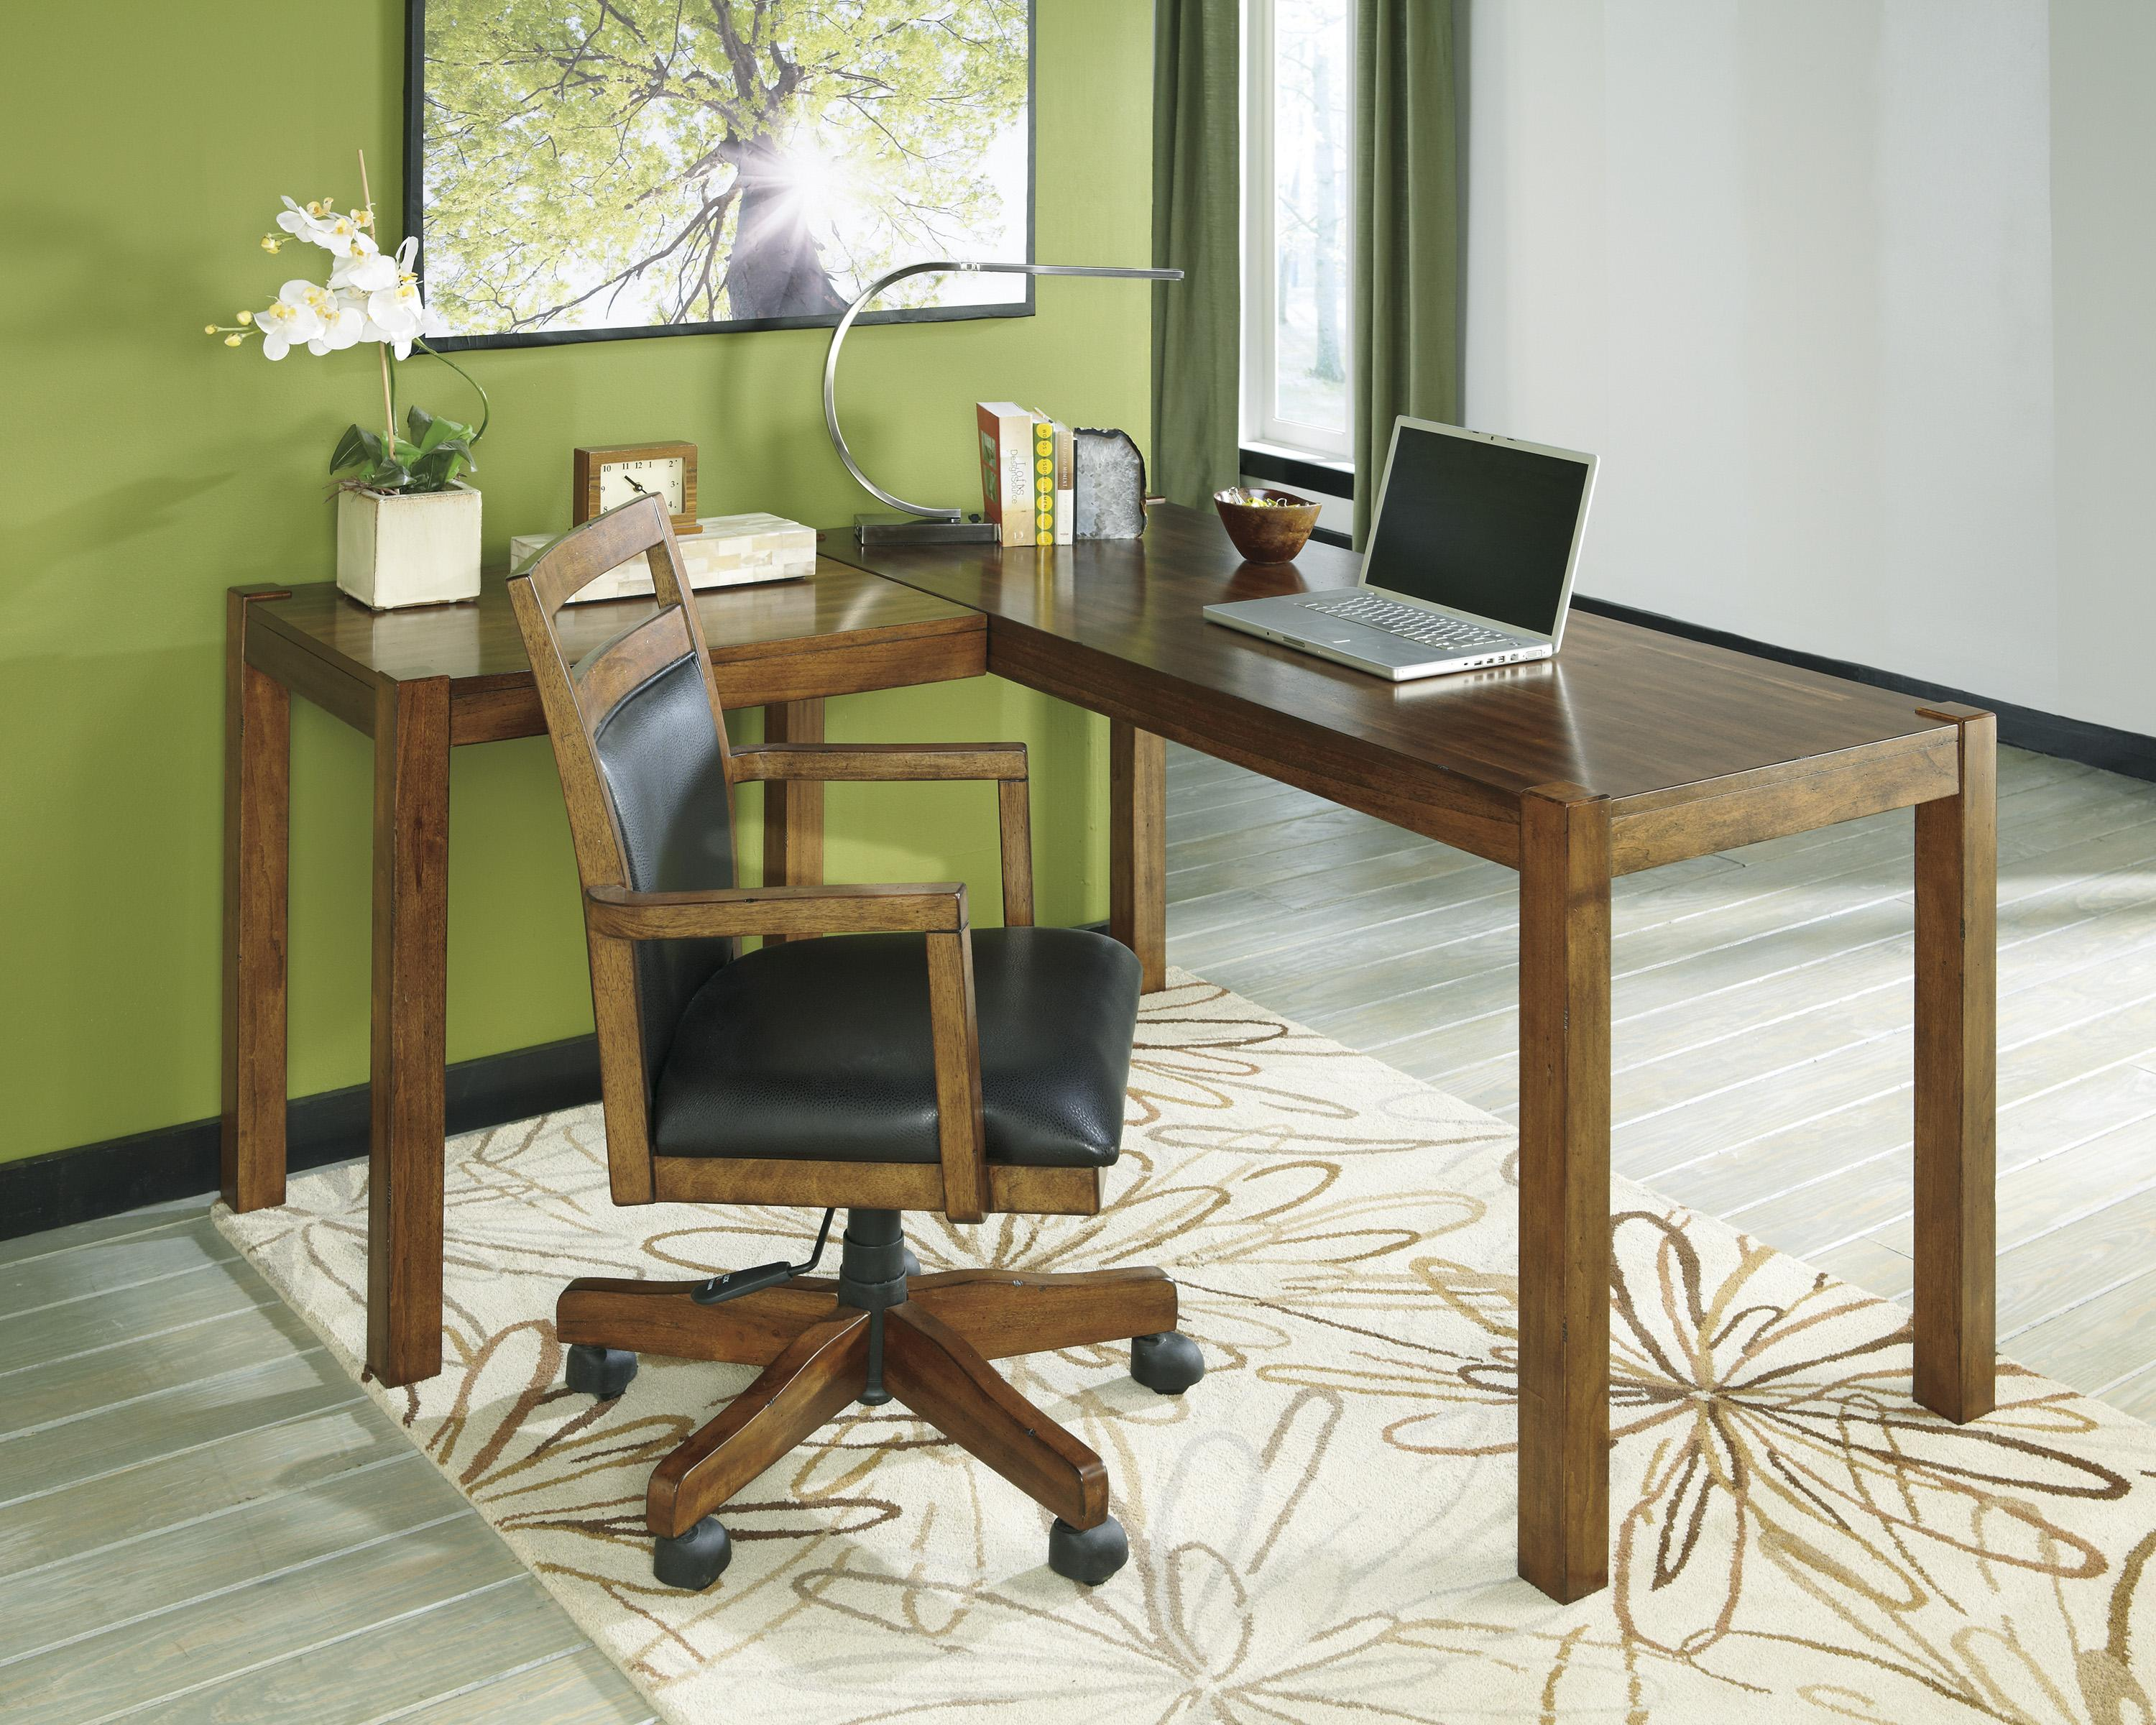 Signature design by ashley lobink h641 01a home office desk chair with cutout detail becker - Ashley furniture office desk ...